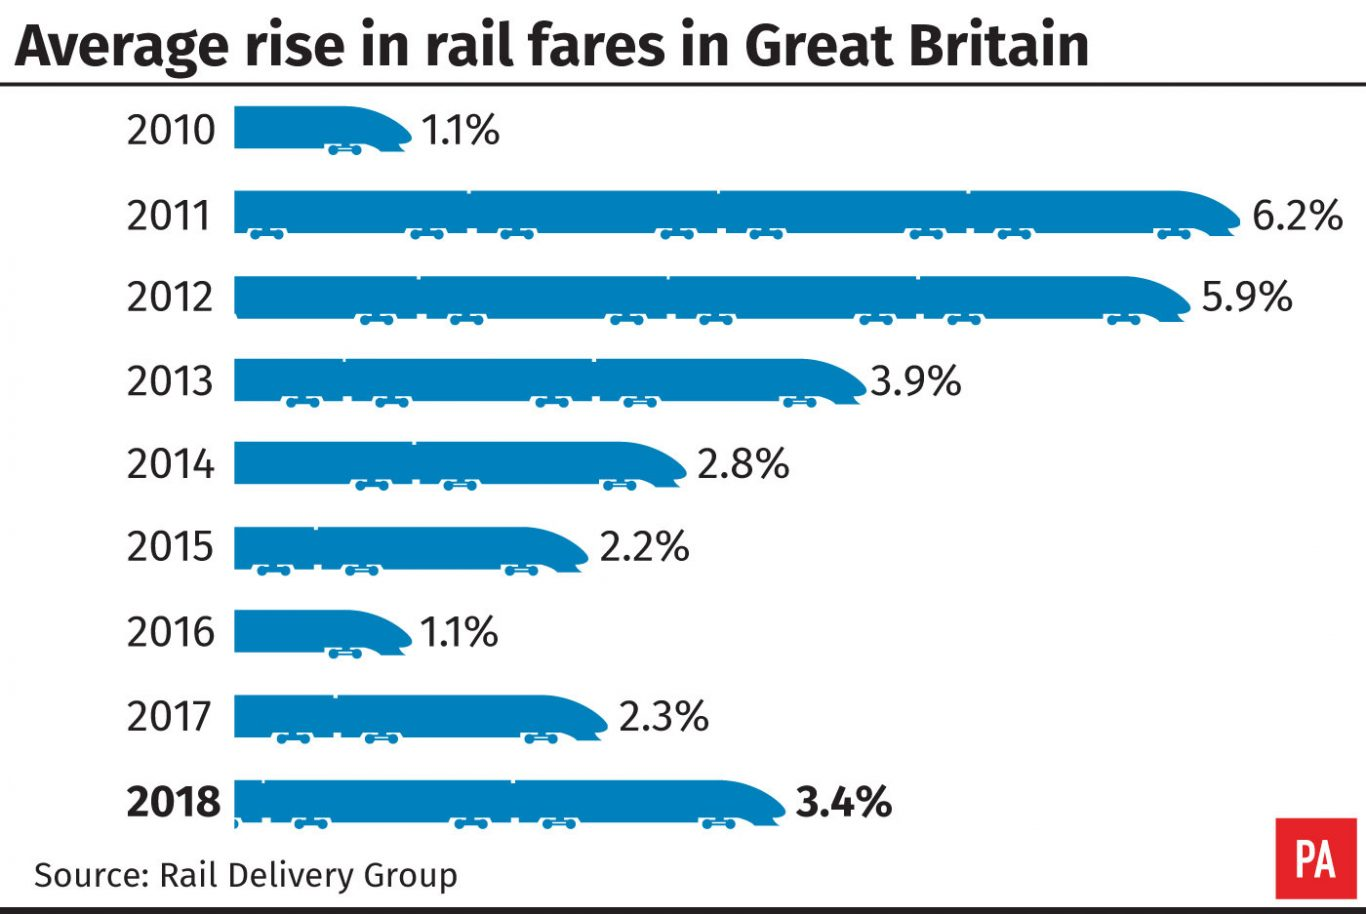 Average rise in rail fares in Great Britain